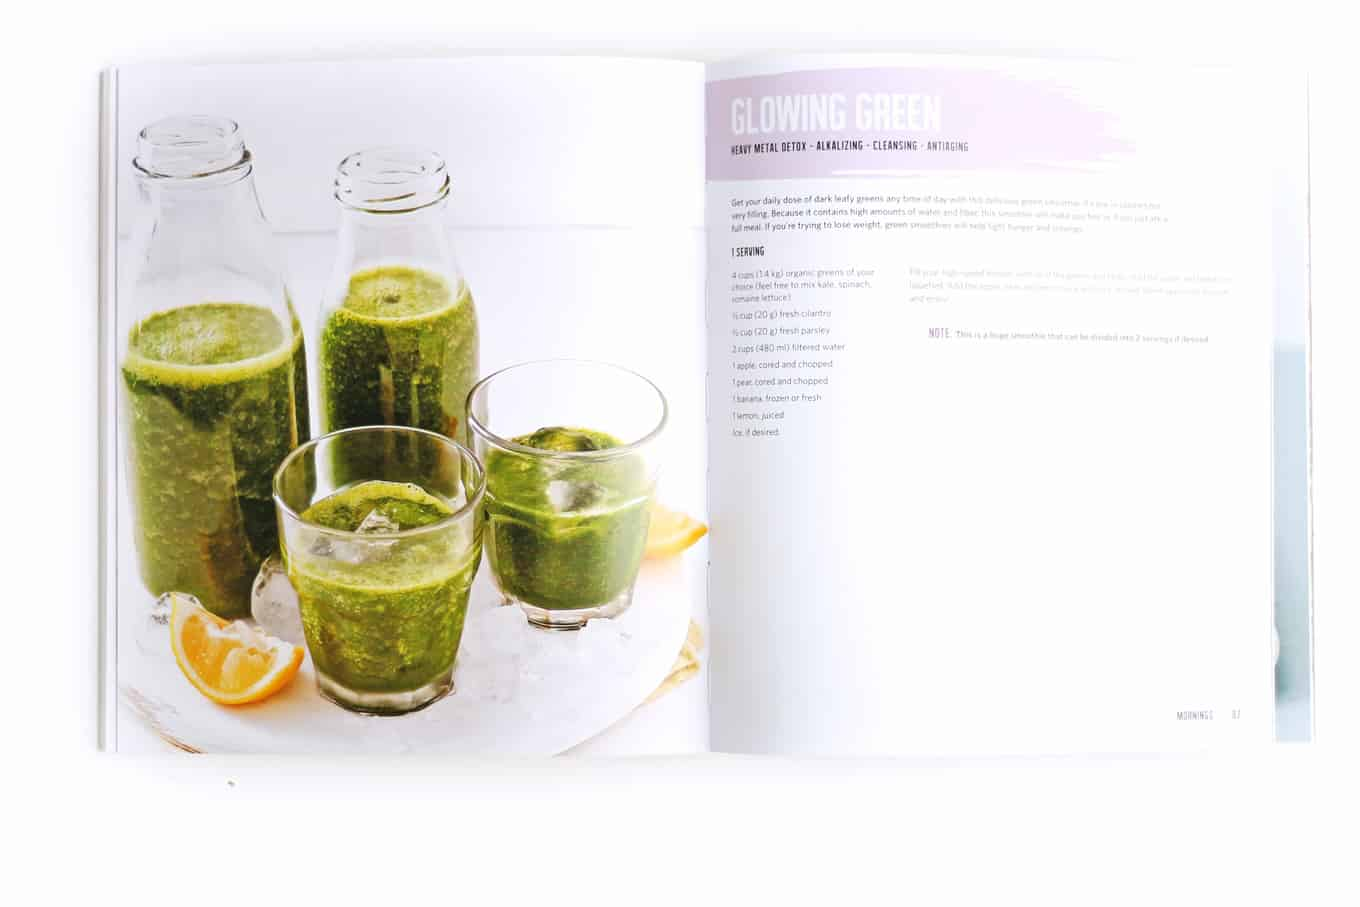 Glowing green smoothie recipe from The Vegan Weight Loss Manifesto